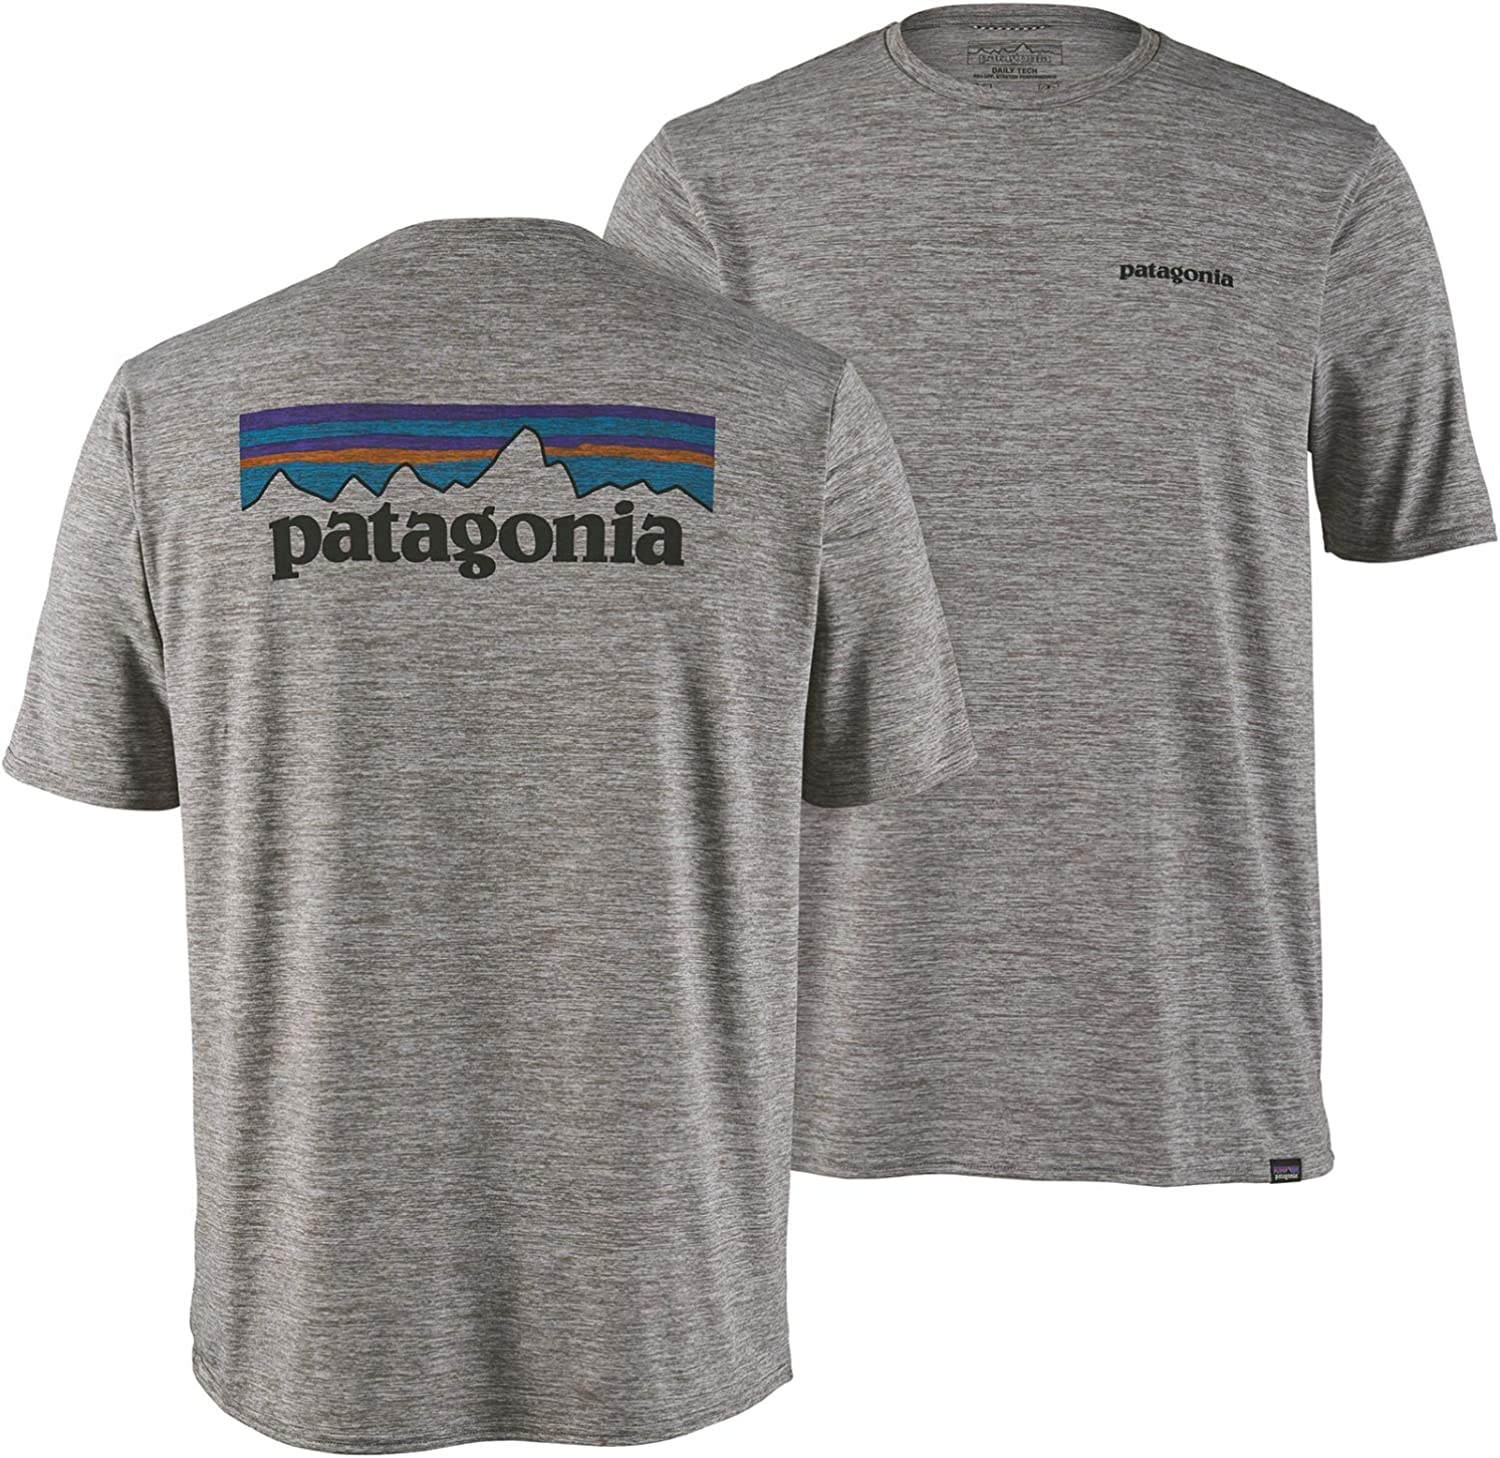 Hombre Patagonia Ms Cap Cool Daily Graphic Shirt Camiseta